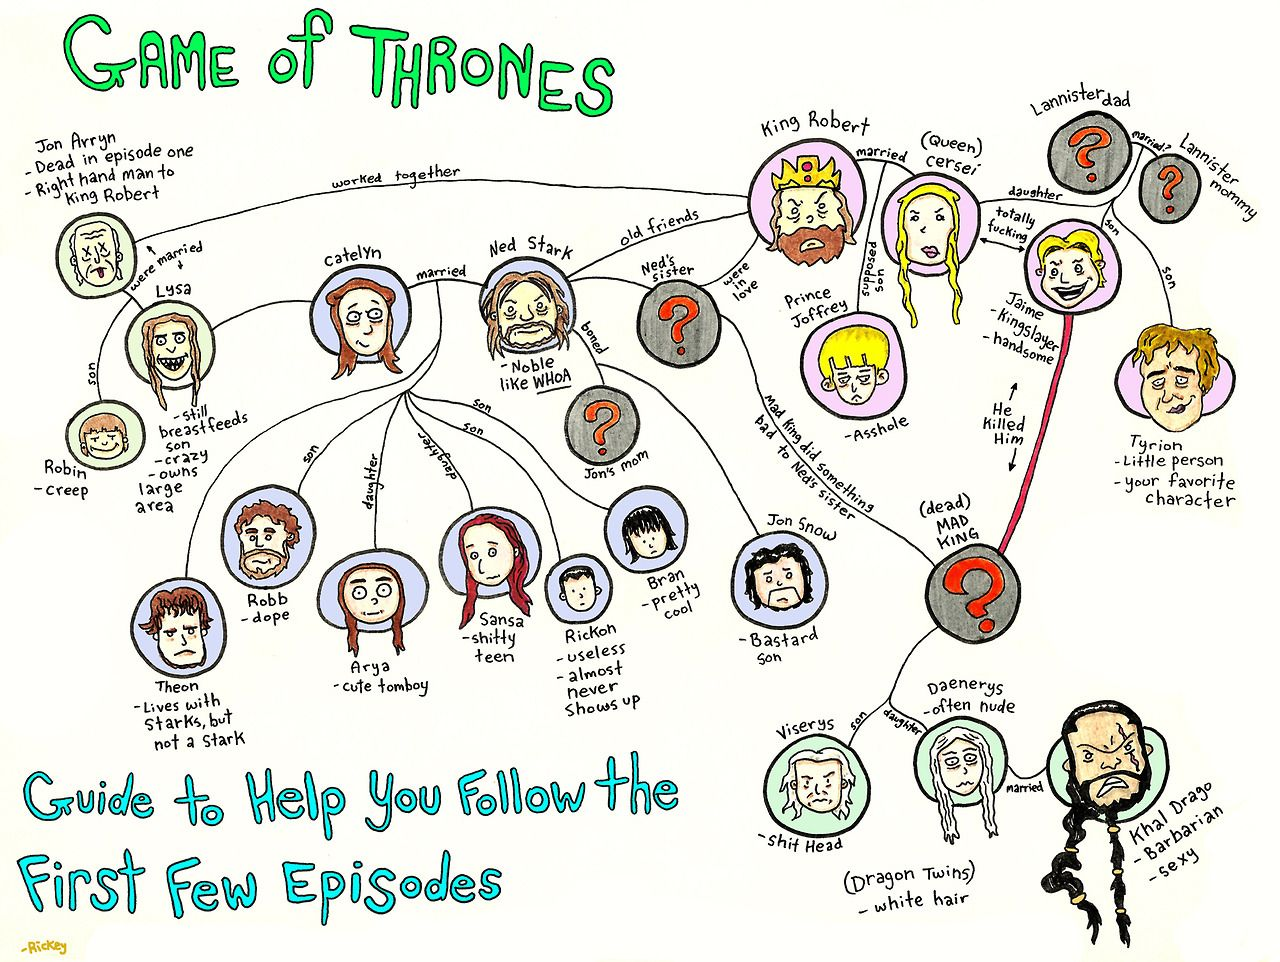 So You Need Some Help Following Game Of Thrones Season 1